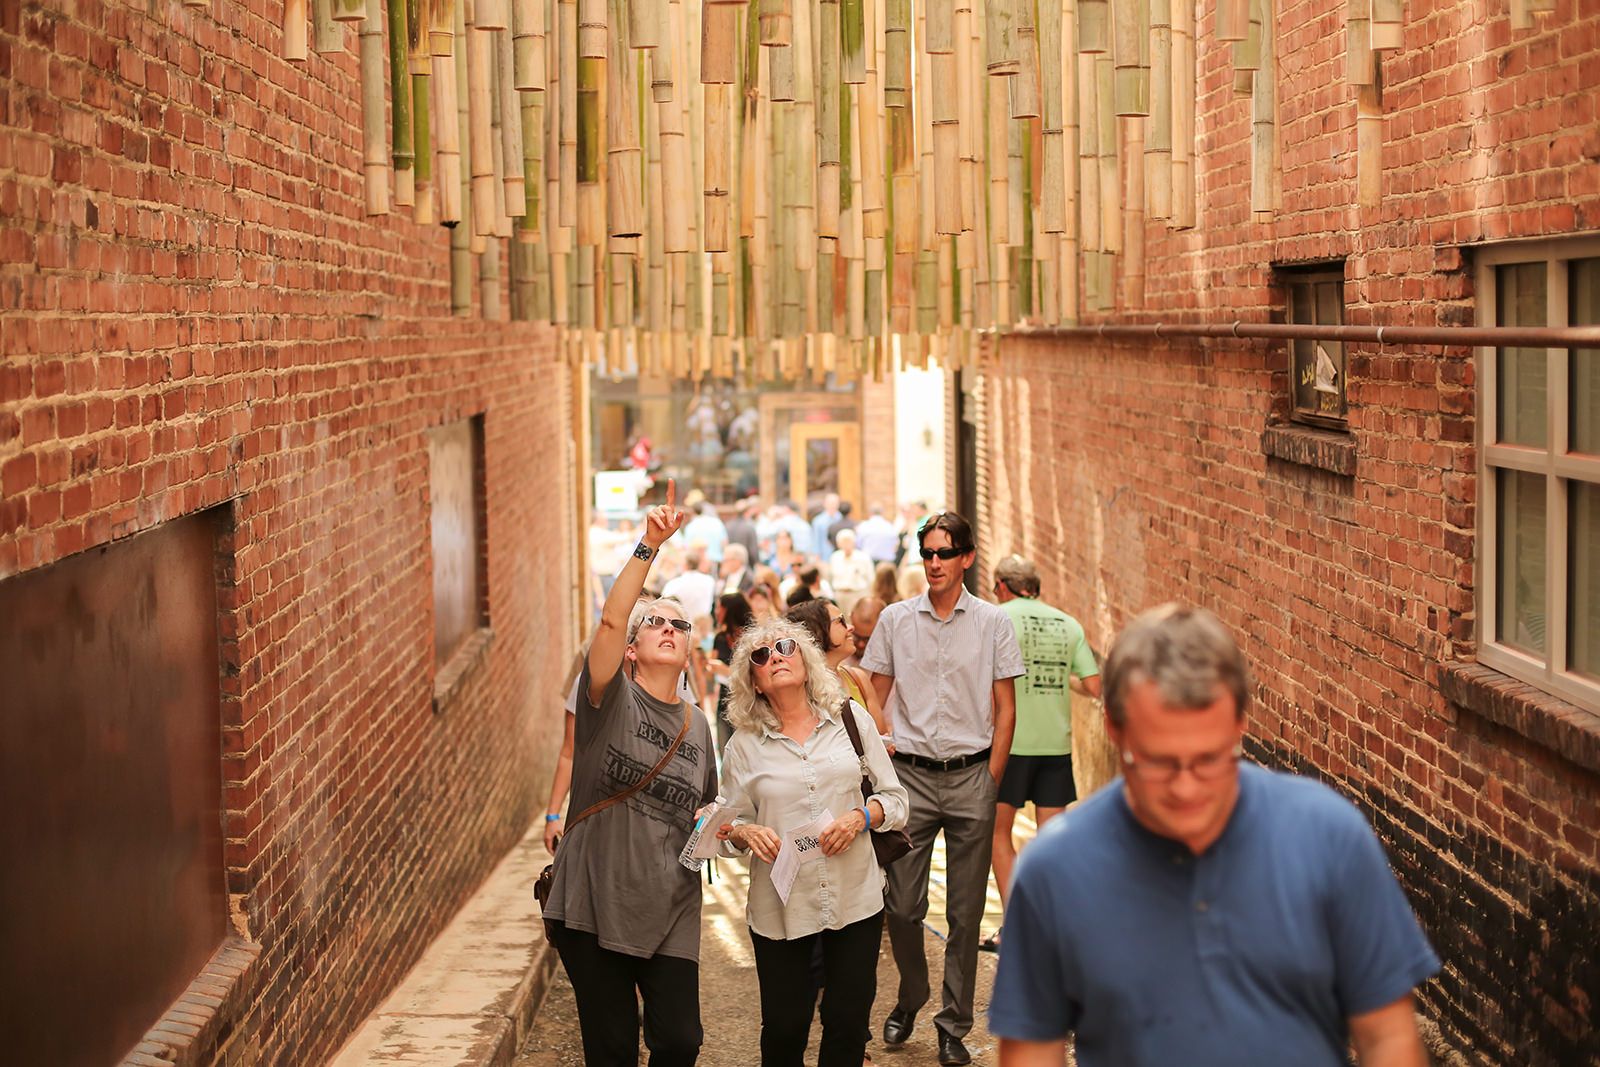 Chattanooga's forgotten alleyways come back to life with architectural installations